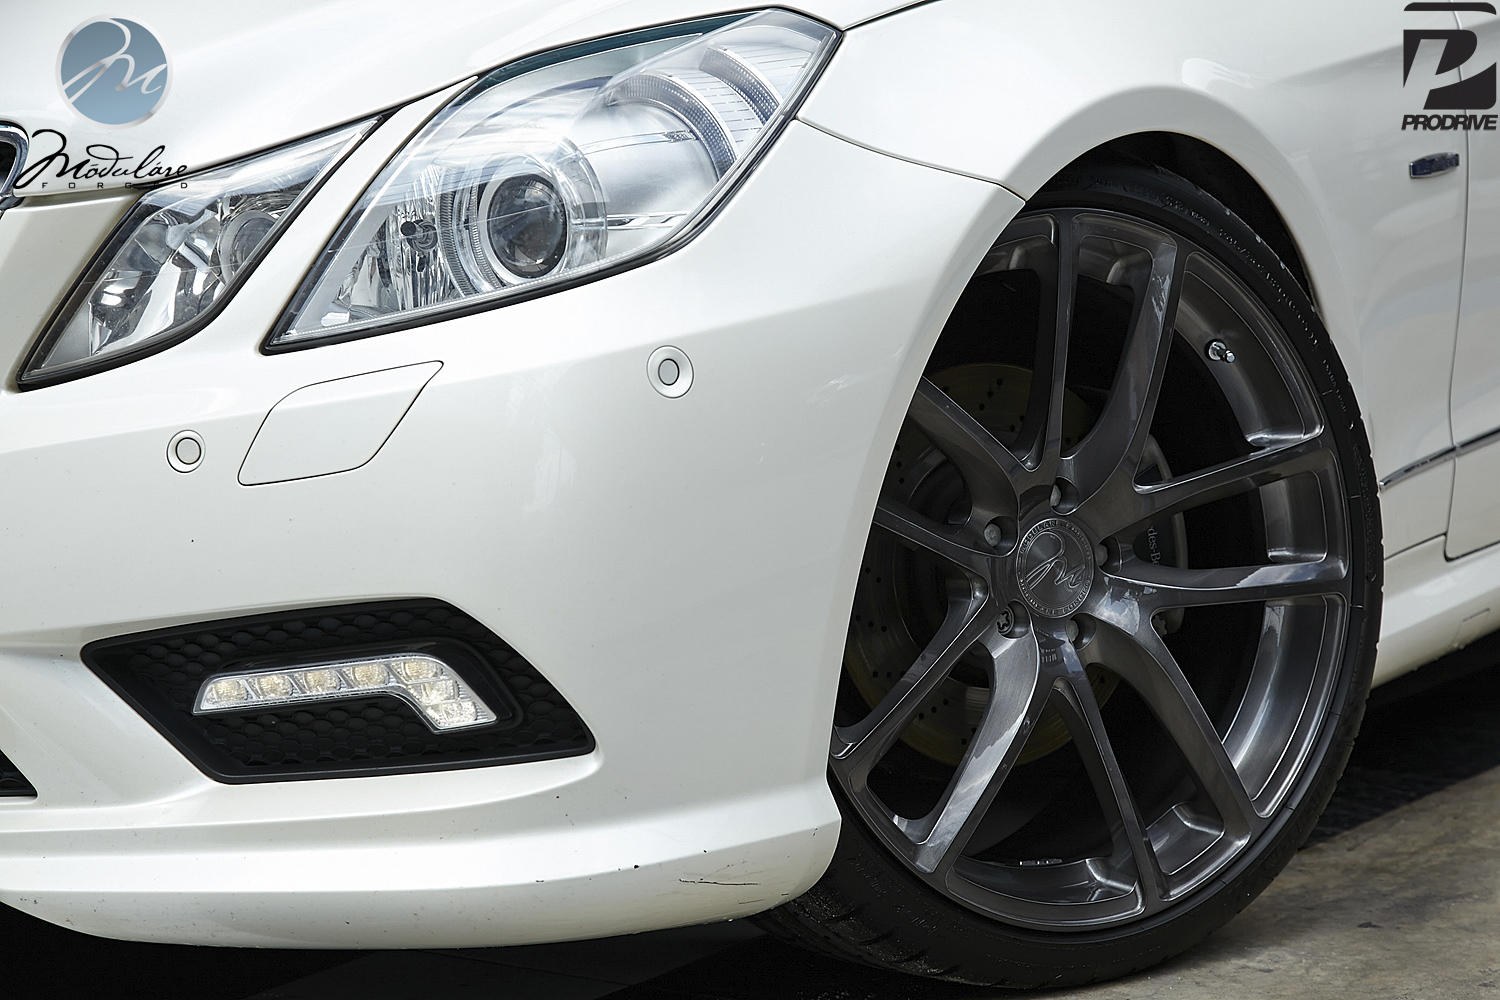 Modulare w207 cabriolet mppsociety for Mercedes benz w207